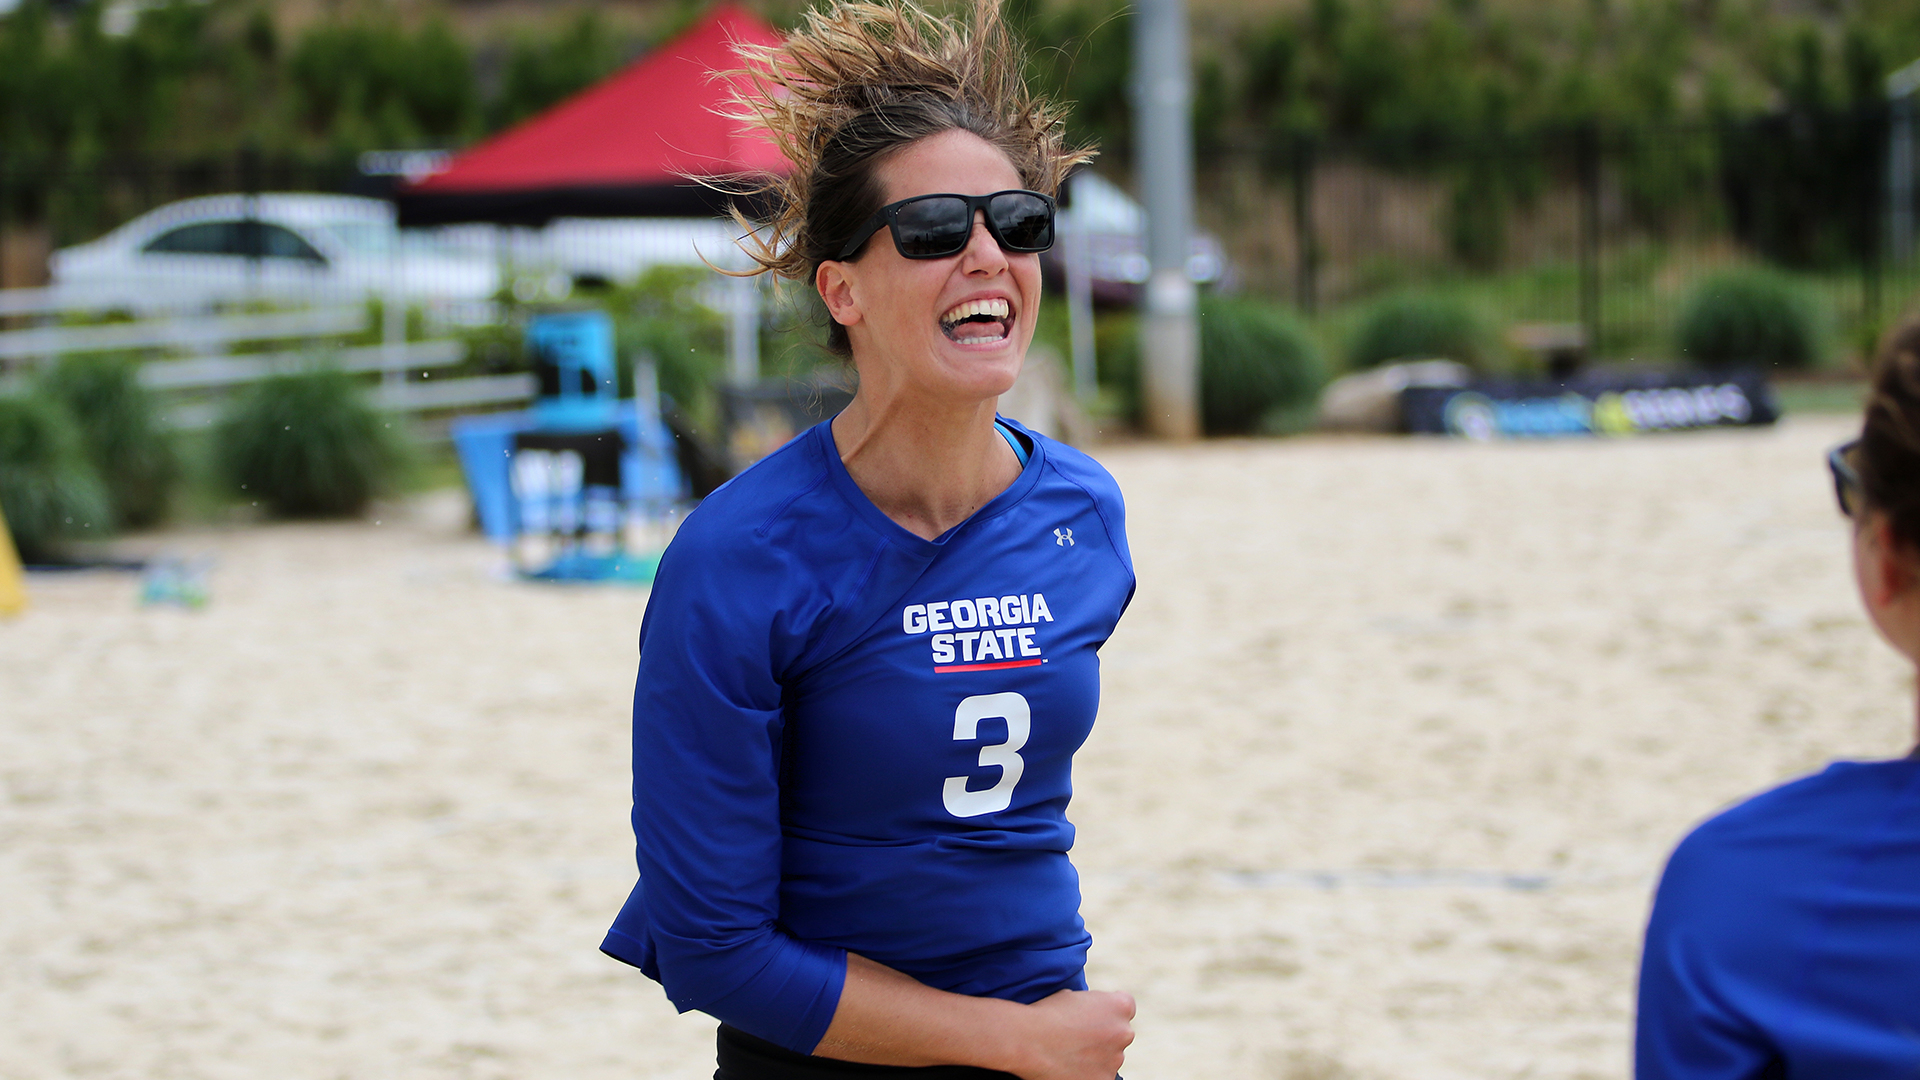 Georgia Johnson - 2021 - Beach Volleyball - Georgia State throughout Georgia State University Summer 2021